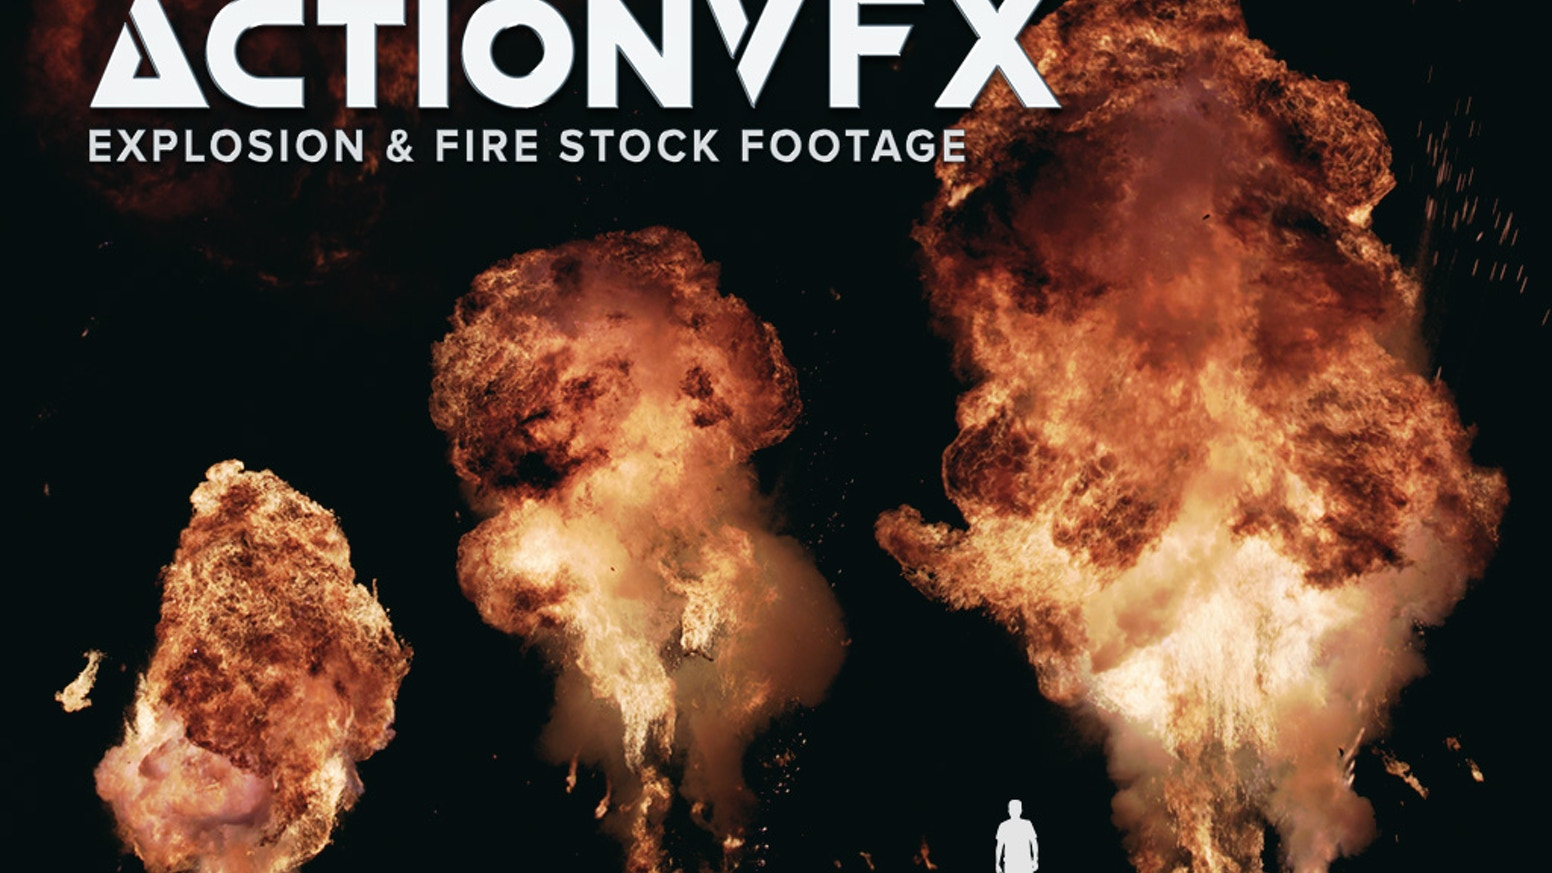 Actionvfx Explosion And Fire Effects For Your Movies By Rodypolis